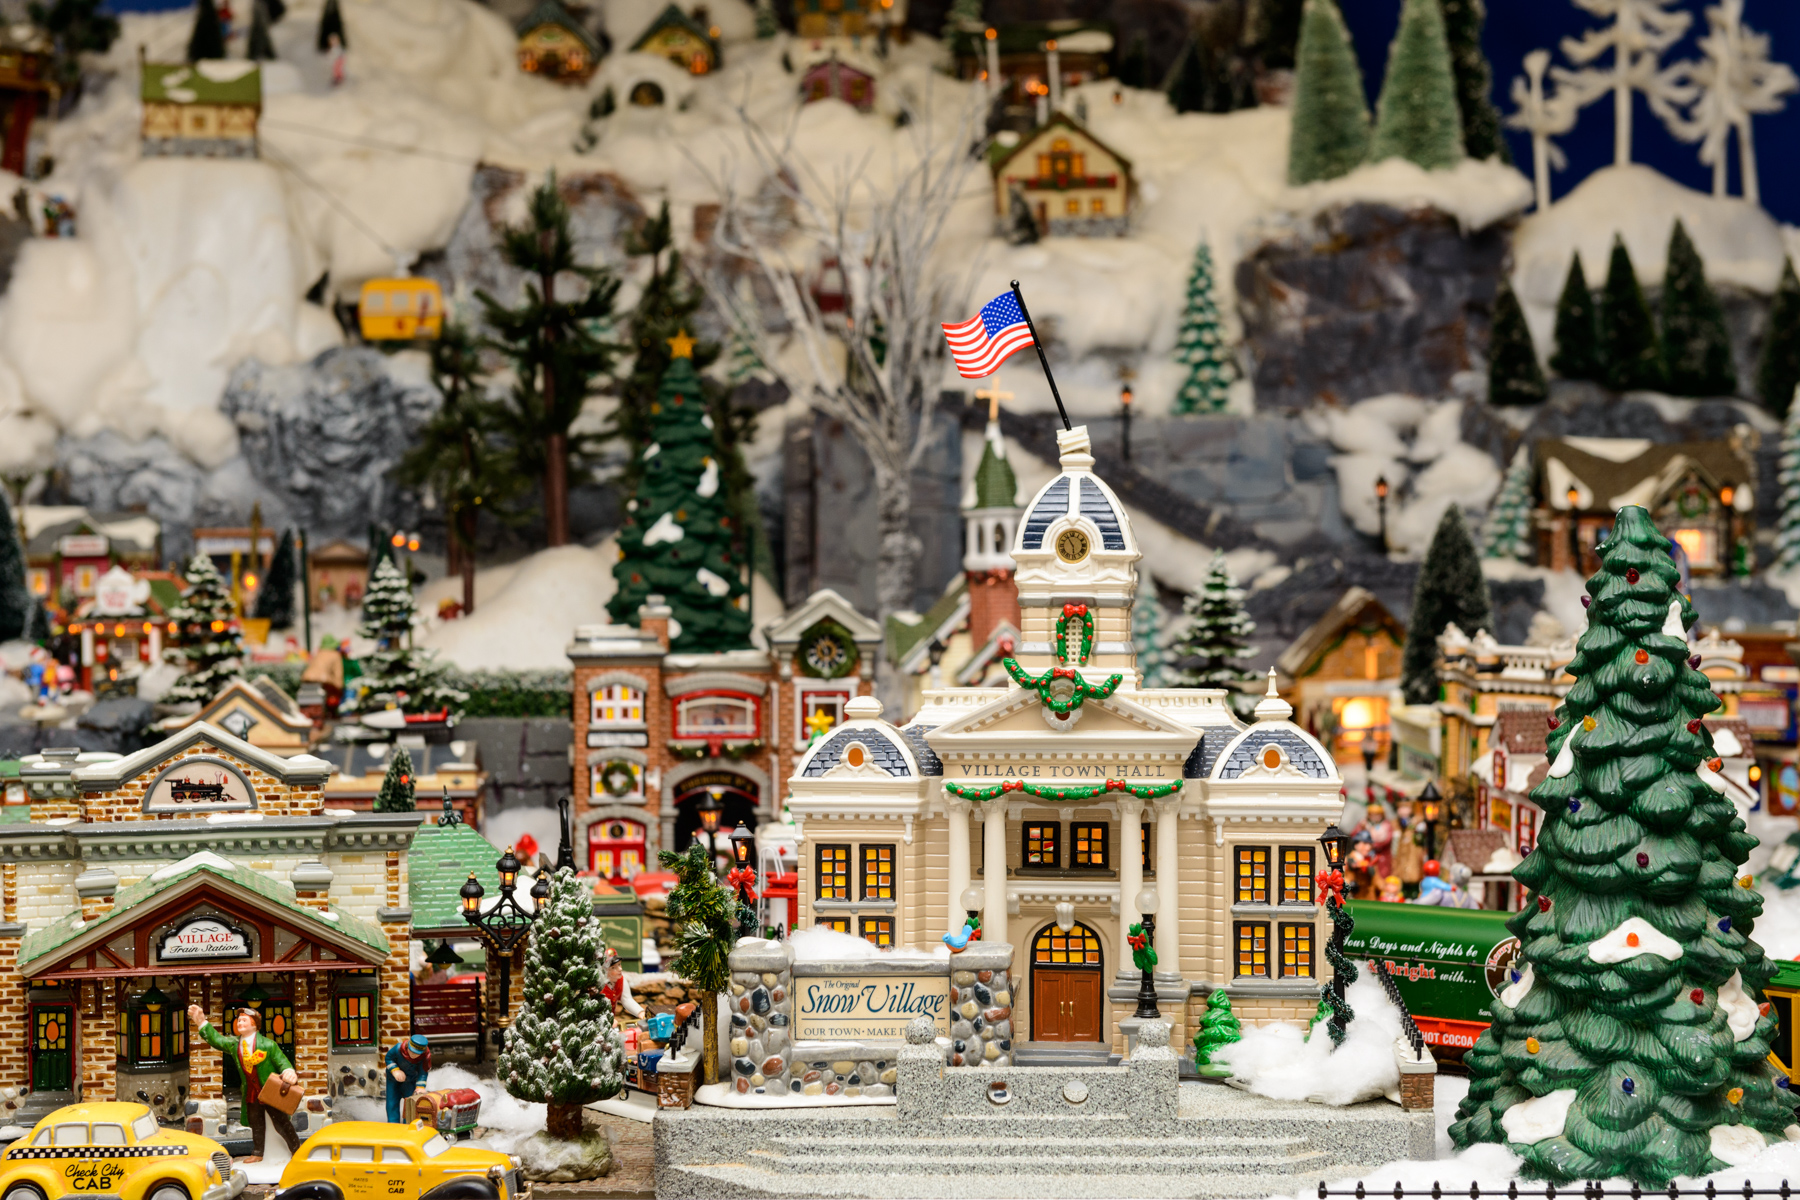 Festival-of-Trees-and-Snow-Village.jpg